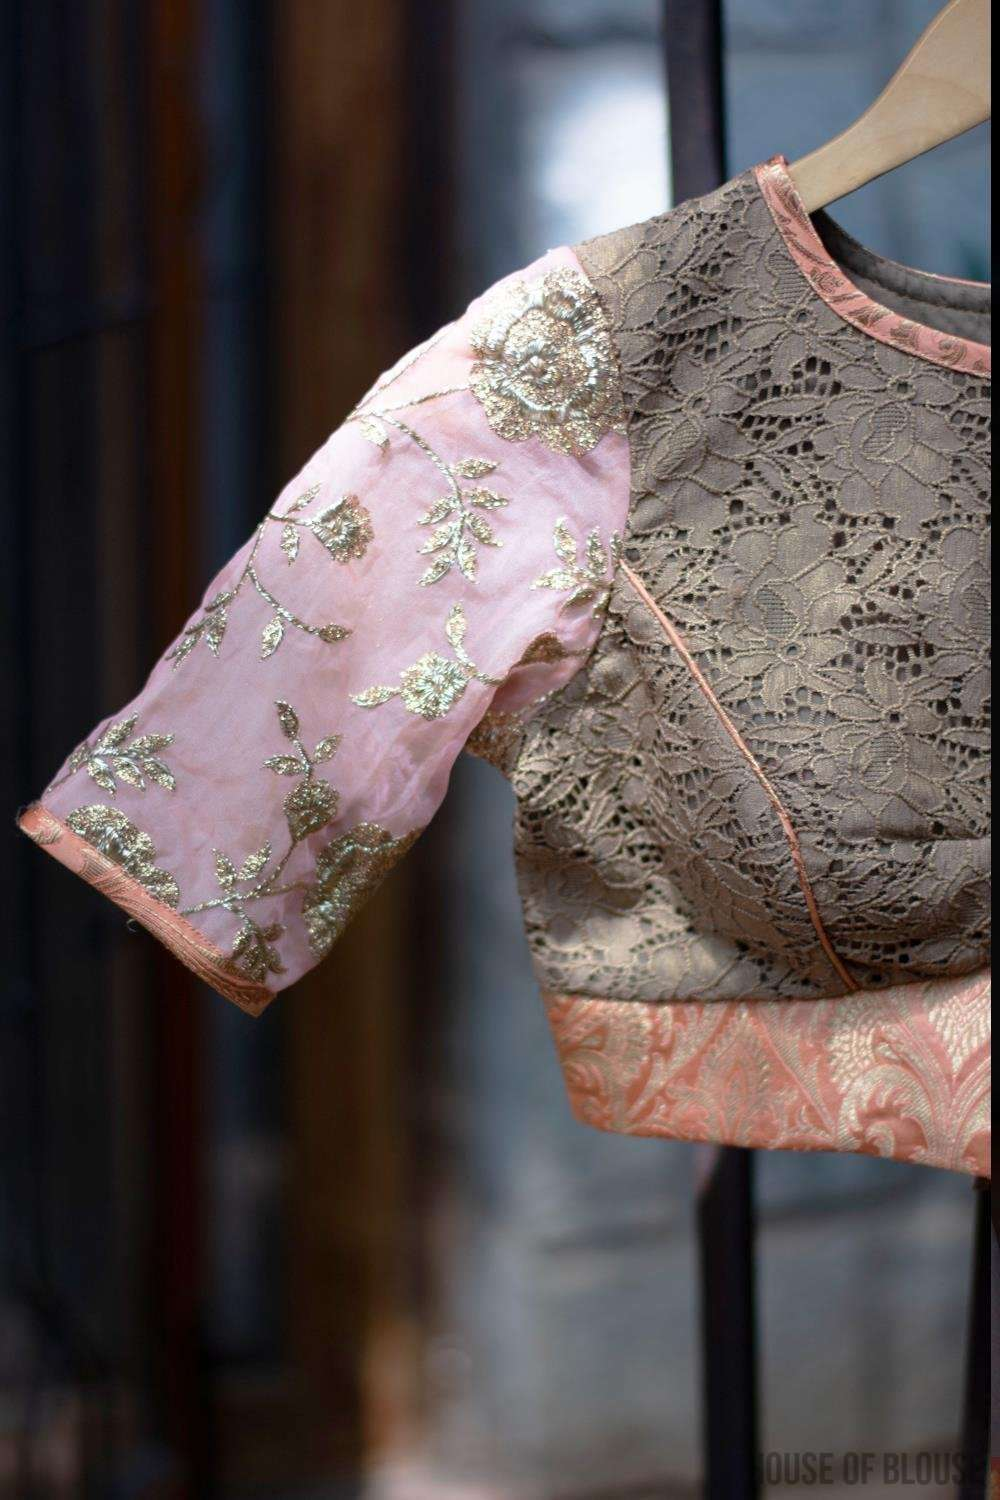 Patchwork blouse in gold lace, peach brocade, and embroidered organza.